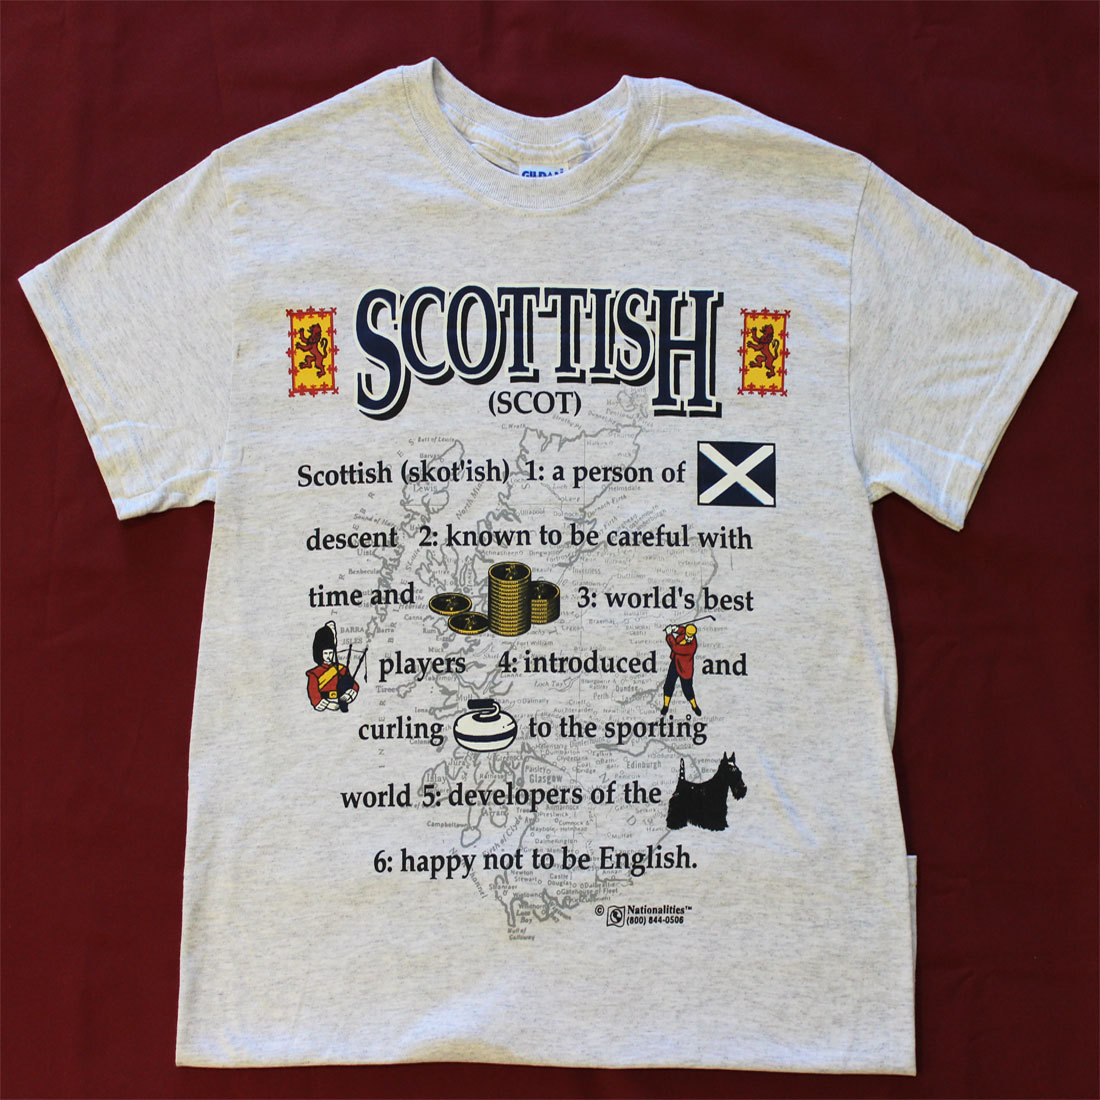 Scotlanddefinitiontshirt2 5